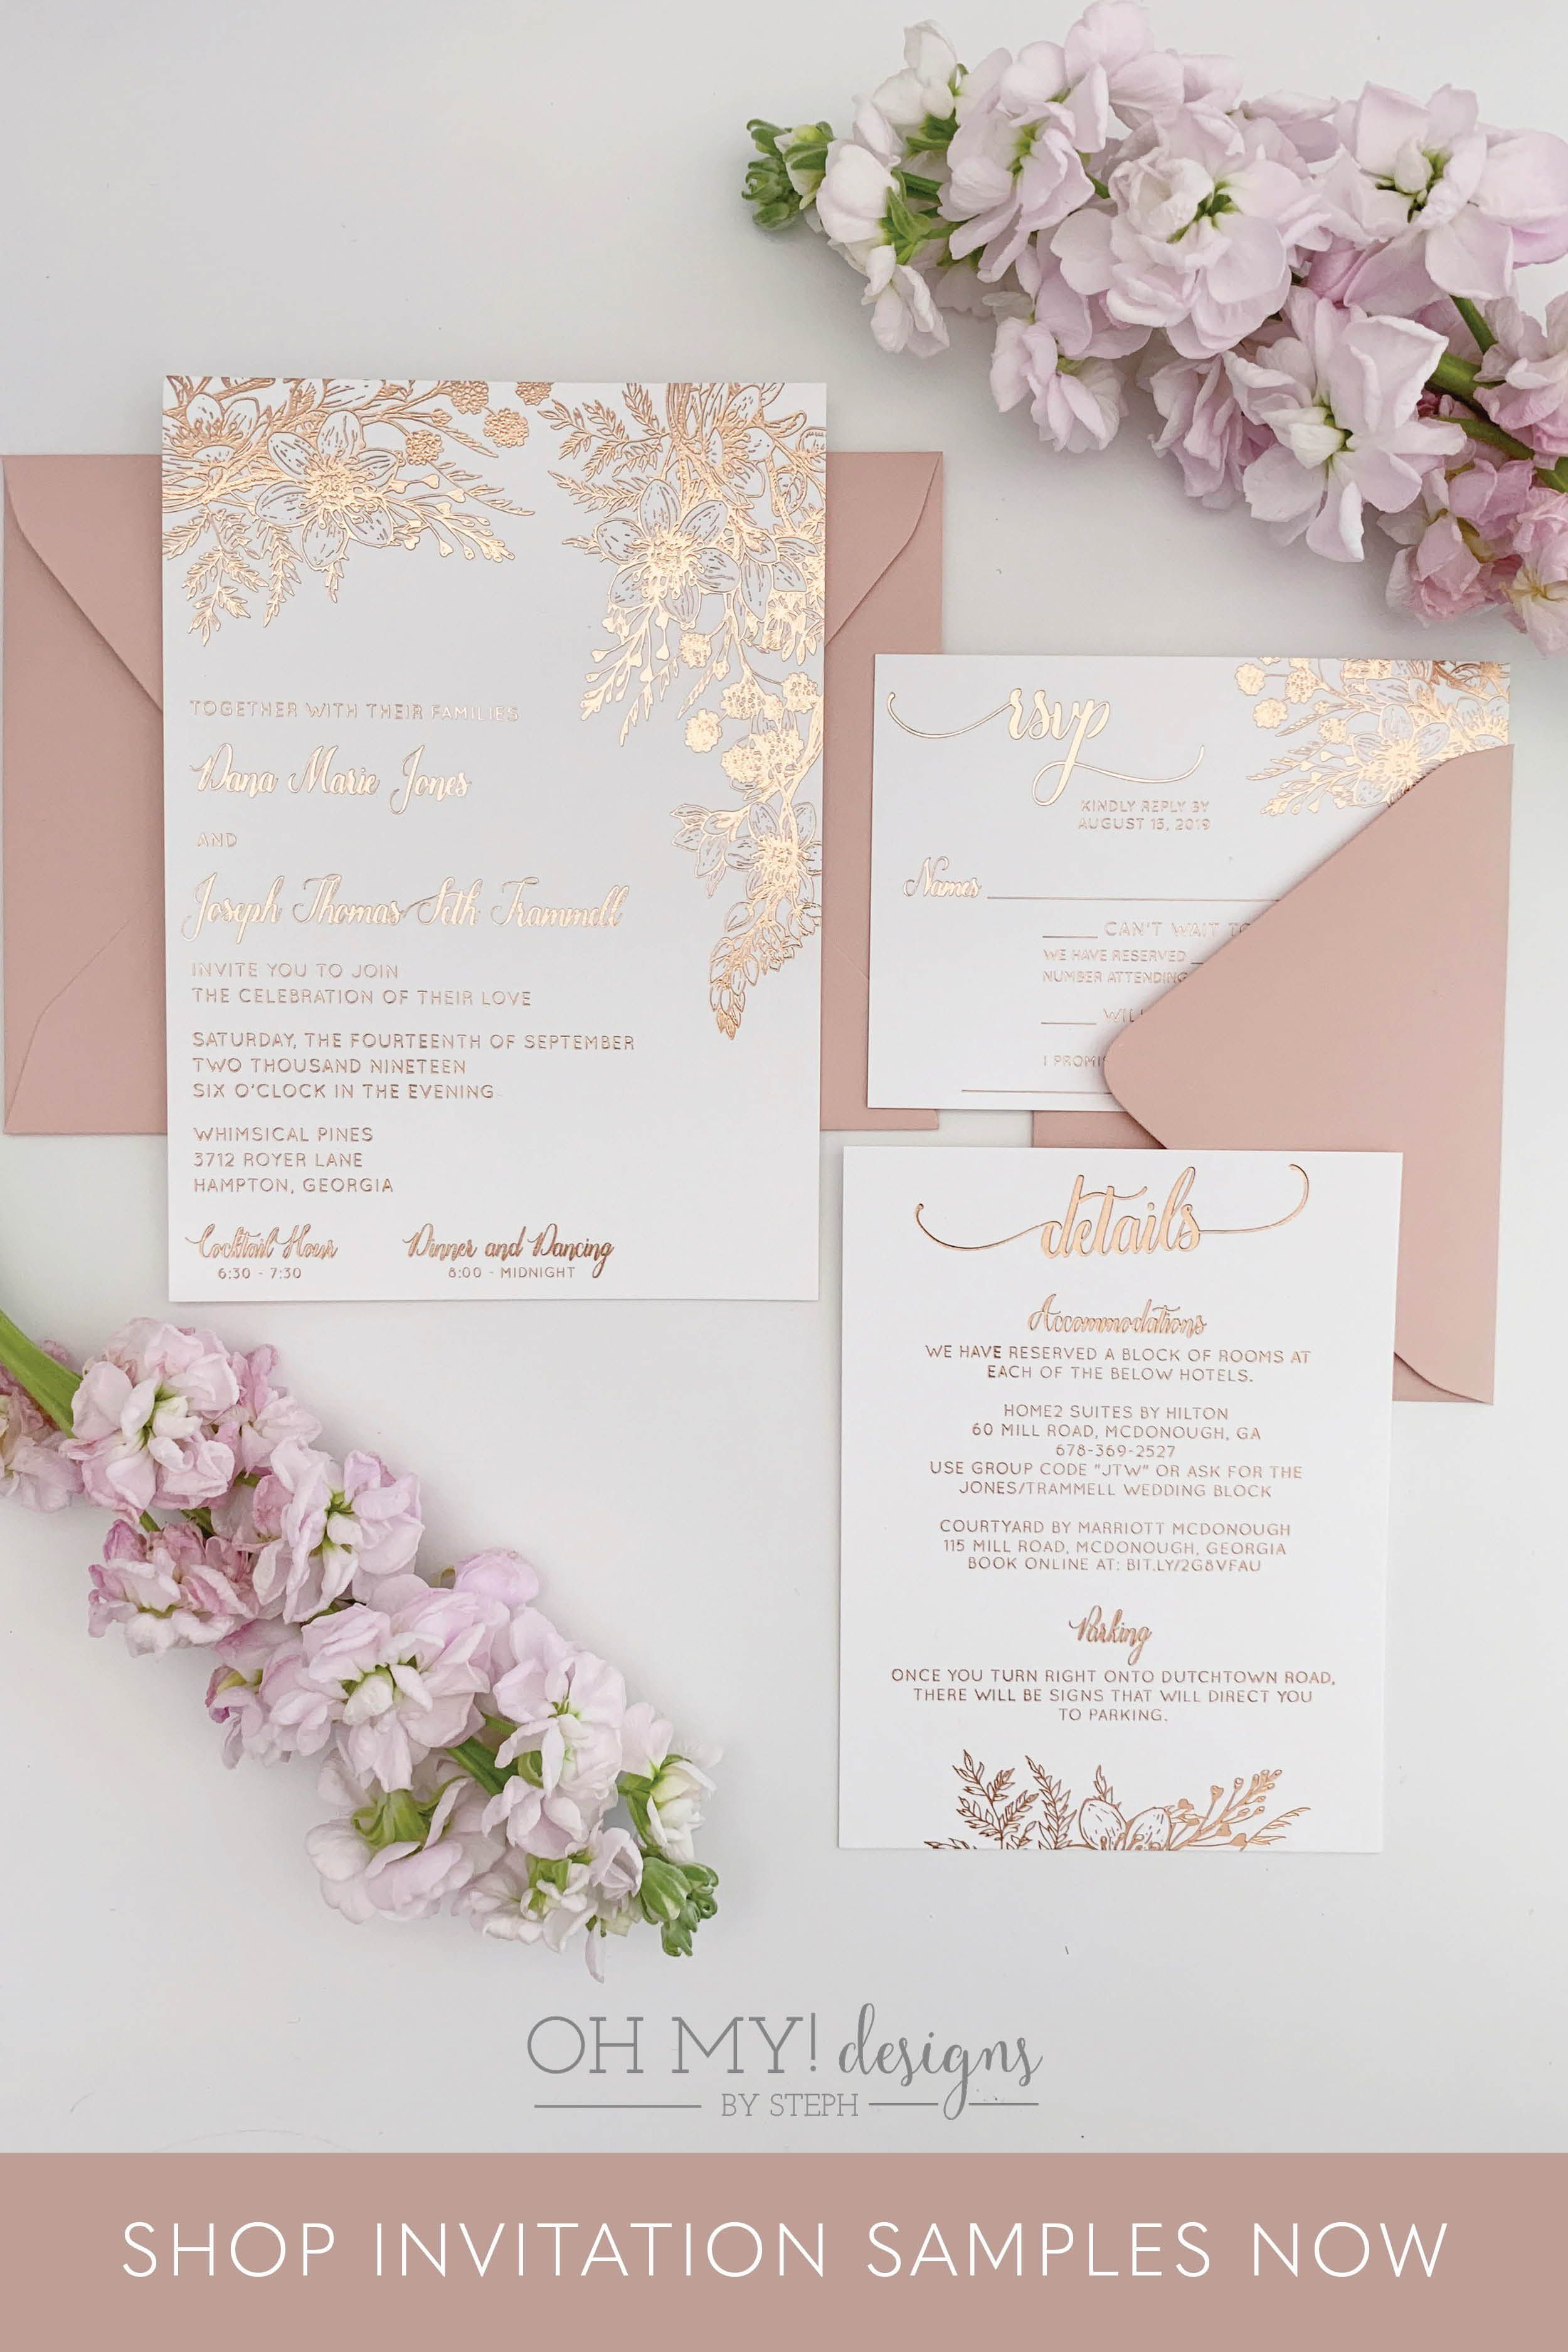 Rose Gold Wedding Invitations With Foil Florals Oh My Designs By Steph Rose Gold Wedding Invitations Gold Wedding Invitations Floral Wedding Invitations